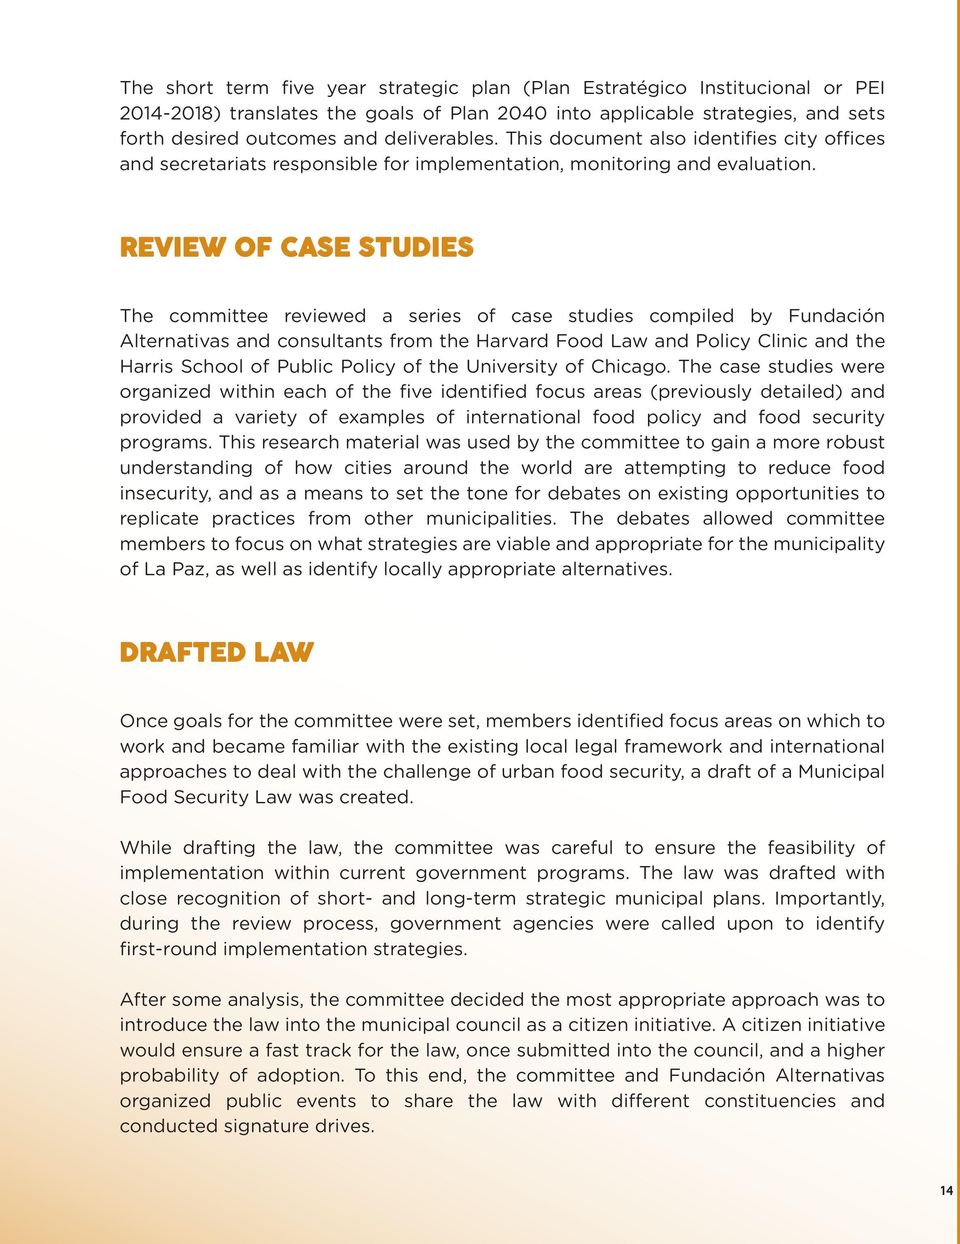 REVIEW OF CASE STUDIES The committee reviewed a series of case studies compiled by Fundación Alternativas and consultants from the Harvard Food Law and Policy Clinic and the Harris School of Public